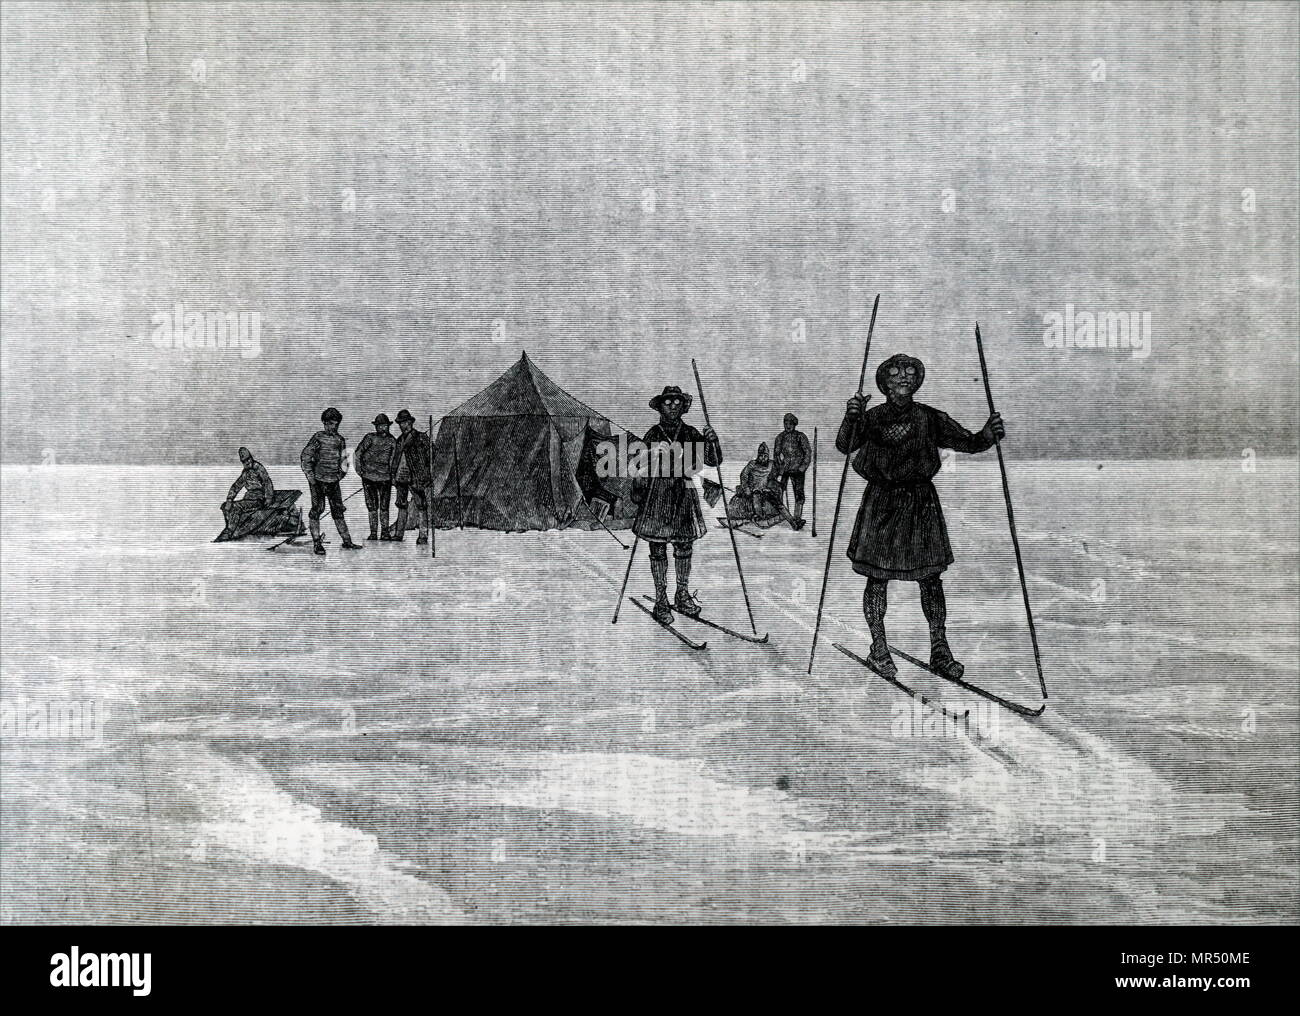 Illustration depicting members of the Nordenskjold expedition in Greenland using skis to penetrate the Inland Ice. Adolf Erik Nordenskjold (1832-1901) a Finnish and Swedish baron, geologist, mineralogist and Arctic Explorer. Dated 19th century - Stock Image